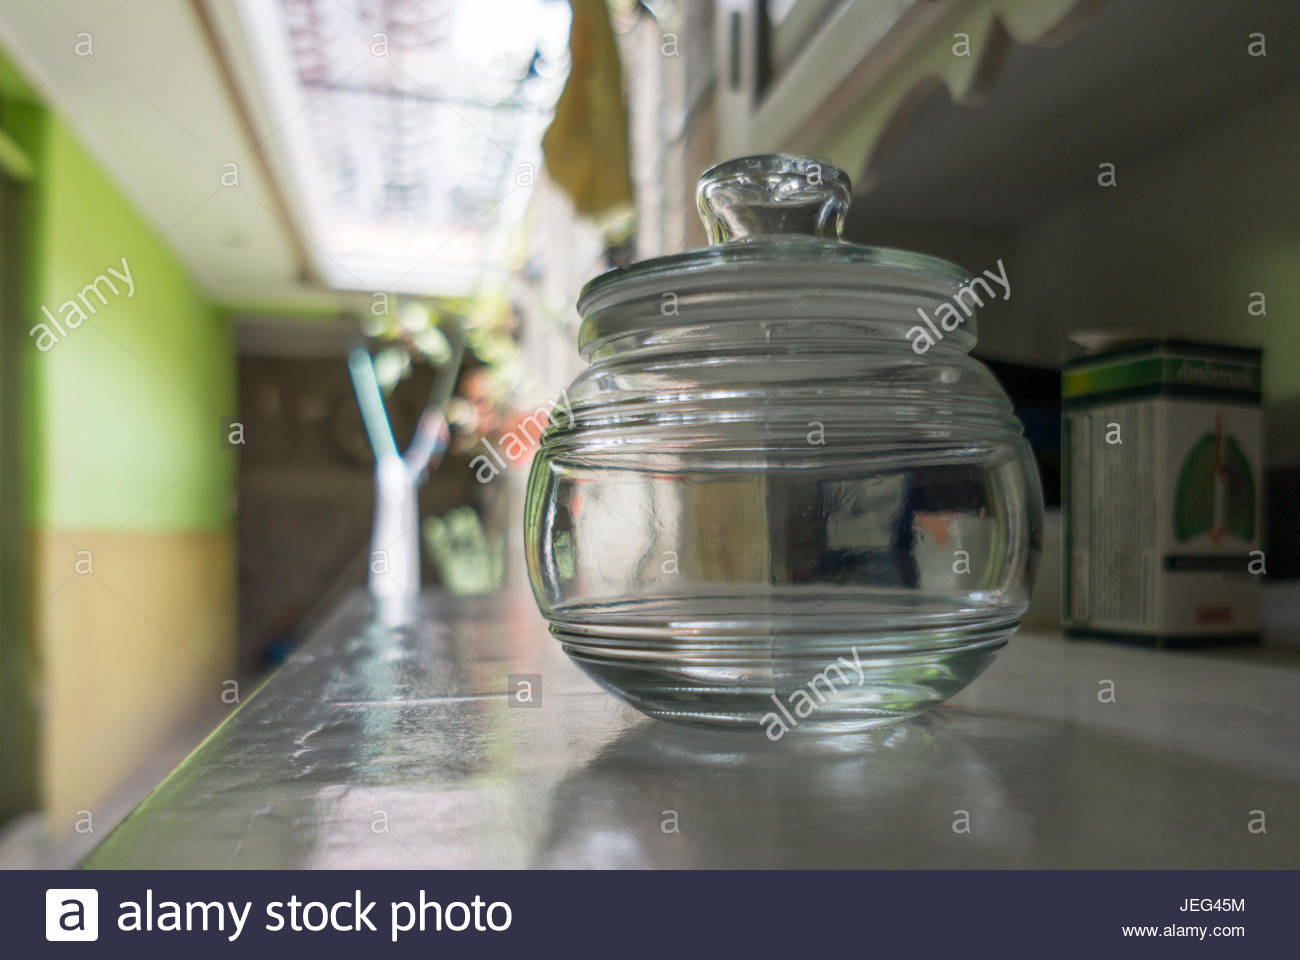 round-glass-jar-with-lid-sitting-on-a-hutch-shelf-JEG45M.jpg